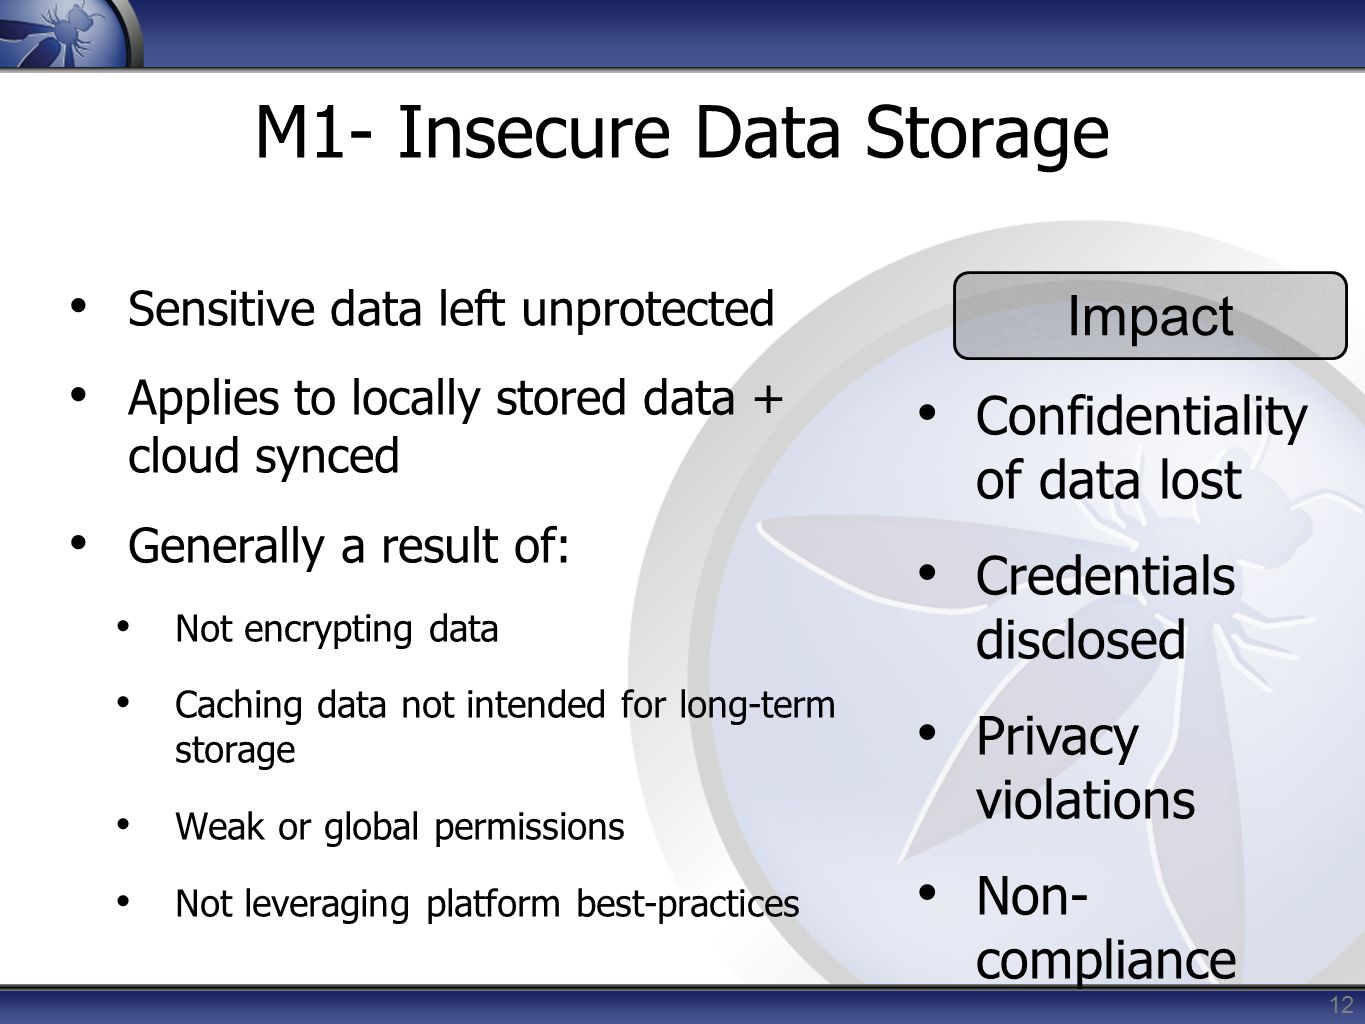 12 M1- Insecure Data Storage Sensitive data left unprotected Applies to locally stored data + cloud synced Generally a result of: Not encrypting data